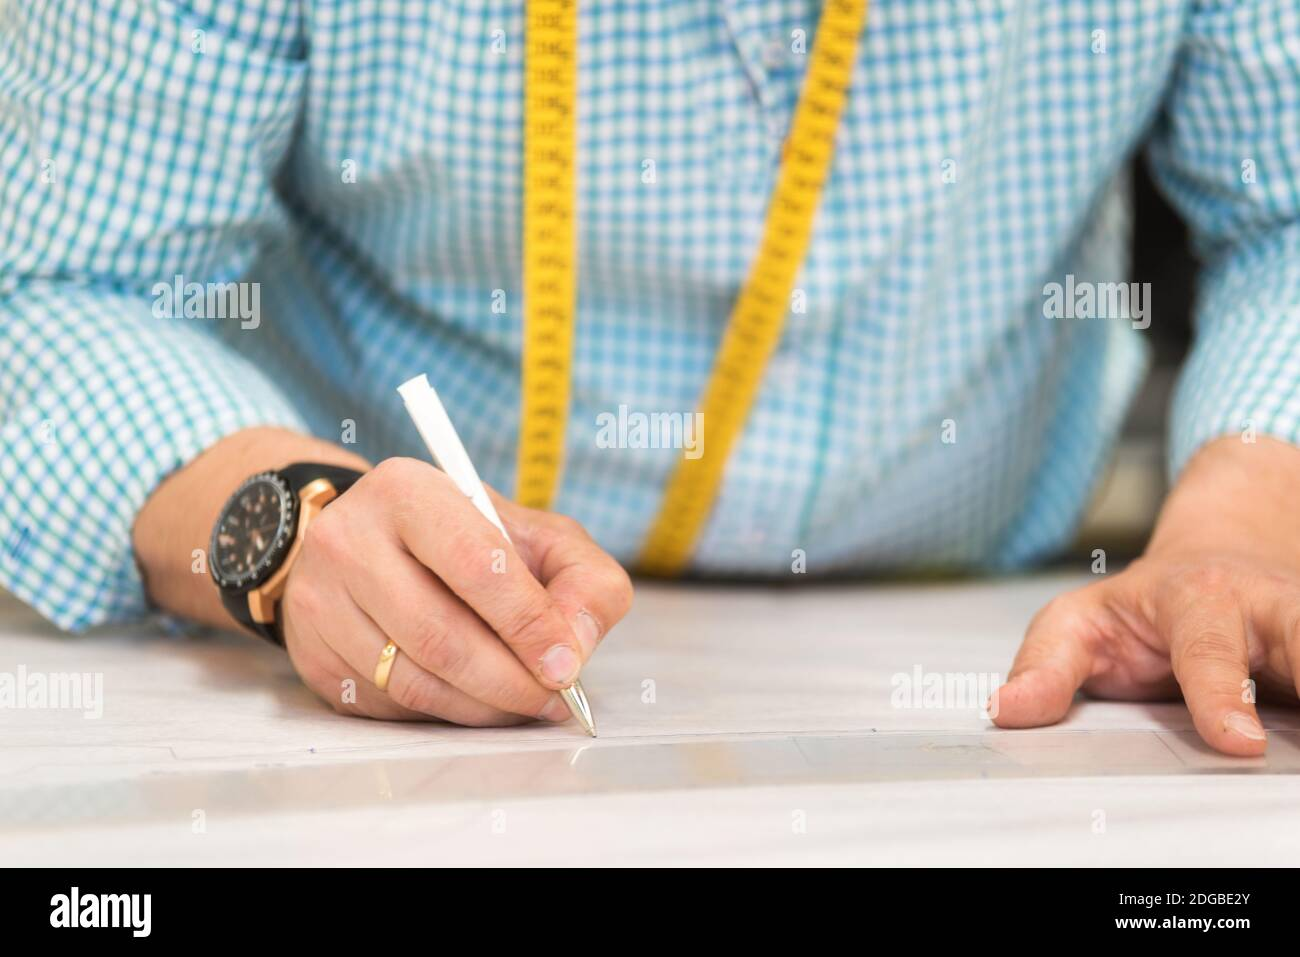 Tailor hands mark drawing on craft paper for making patterns. Stock Photo